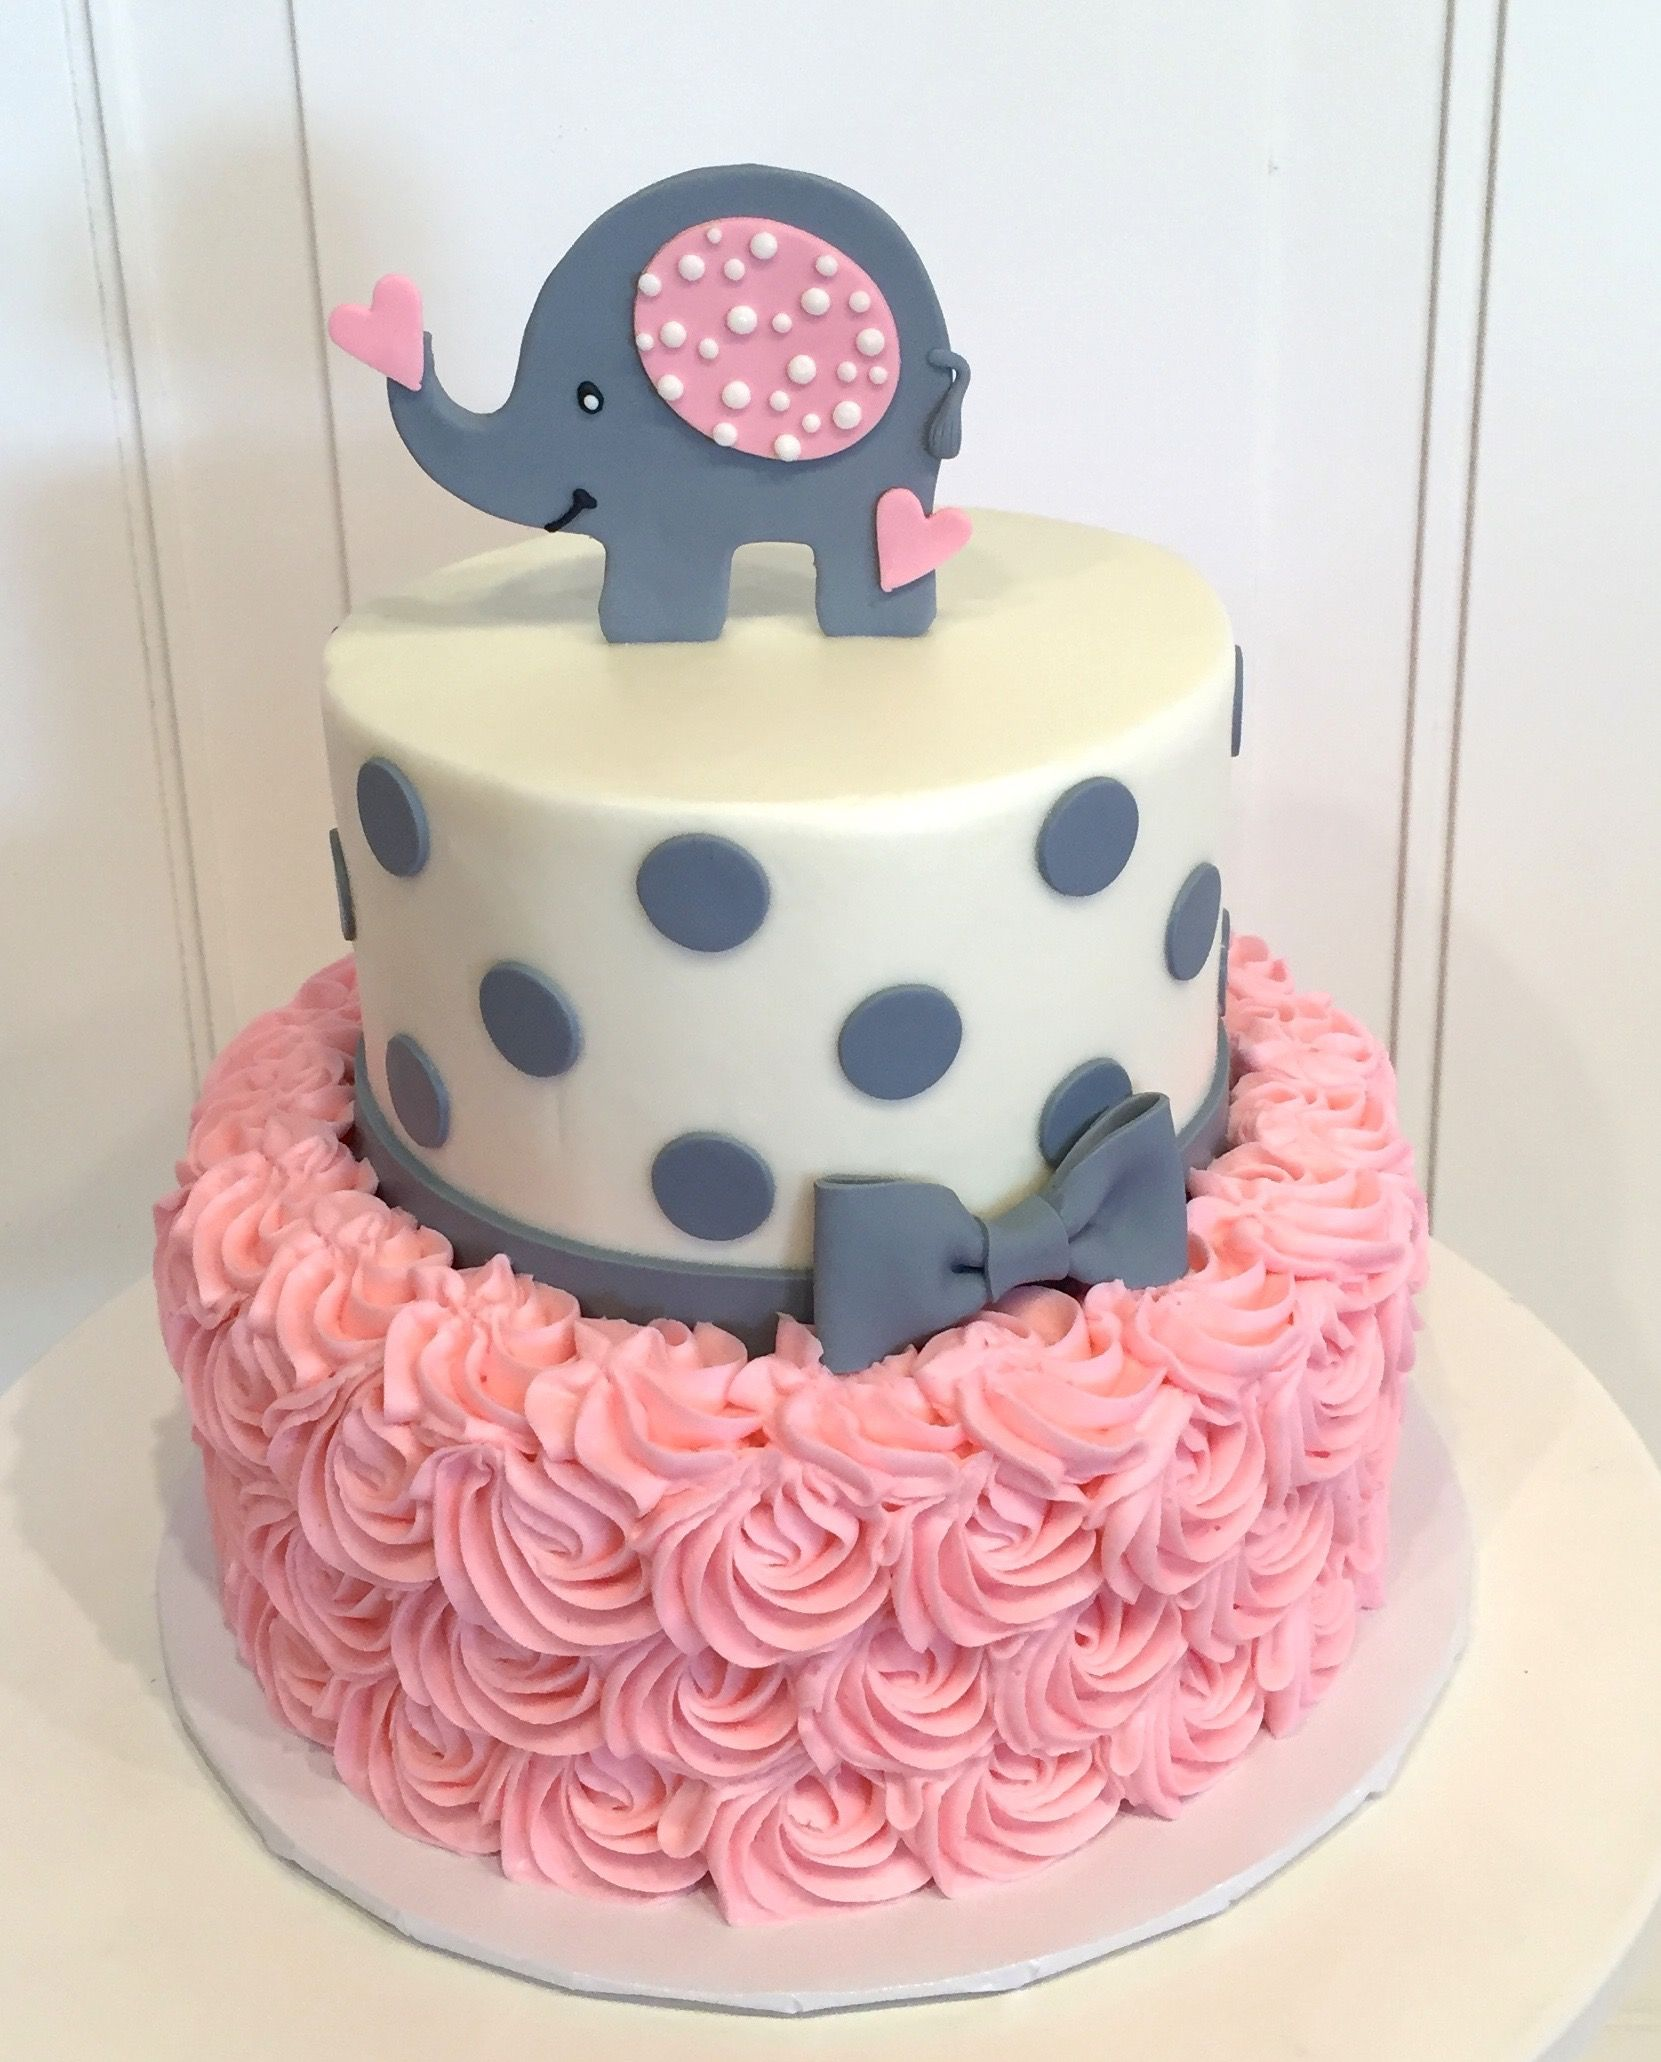 Baby Shower Cake With Elephant On Top The Cake Is A Pink ...